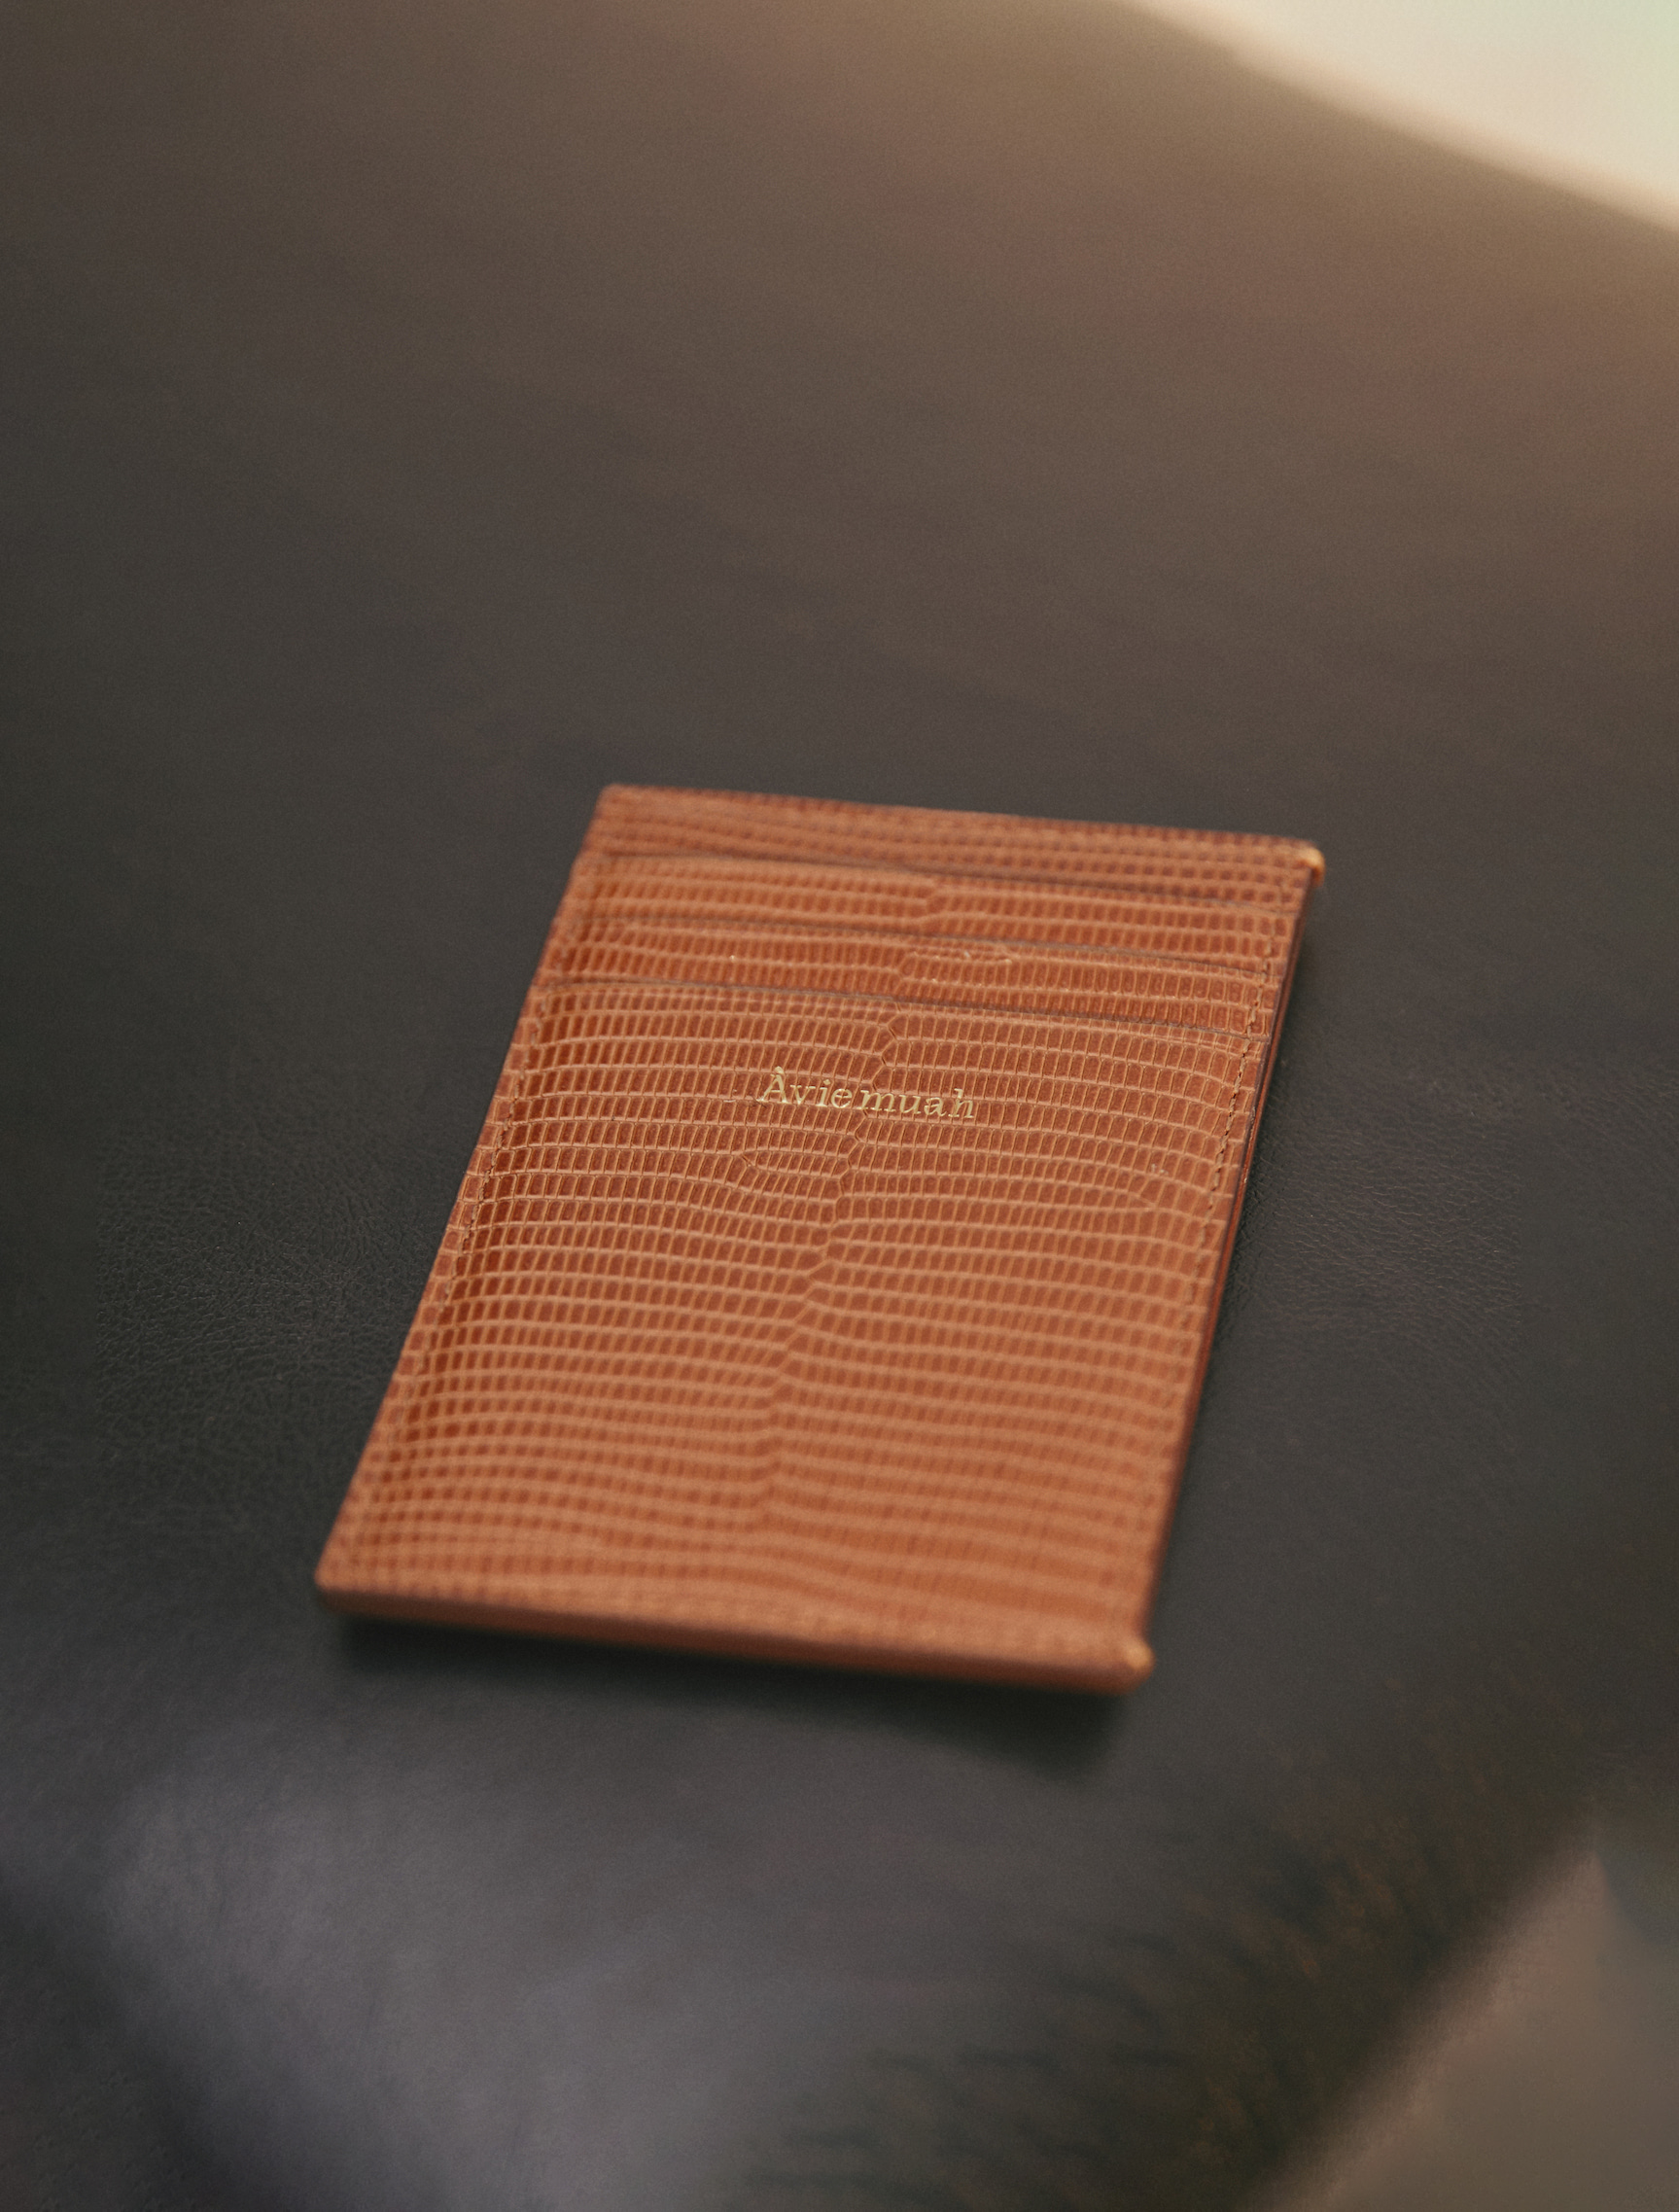 2nd REORDER · 7 Pocket Card Holder (Lizard Cognac)